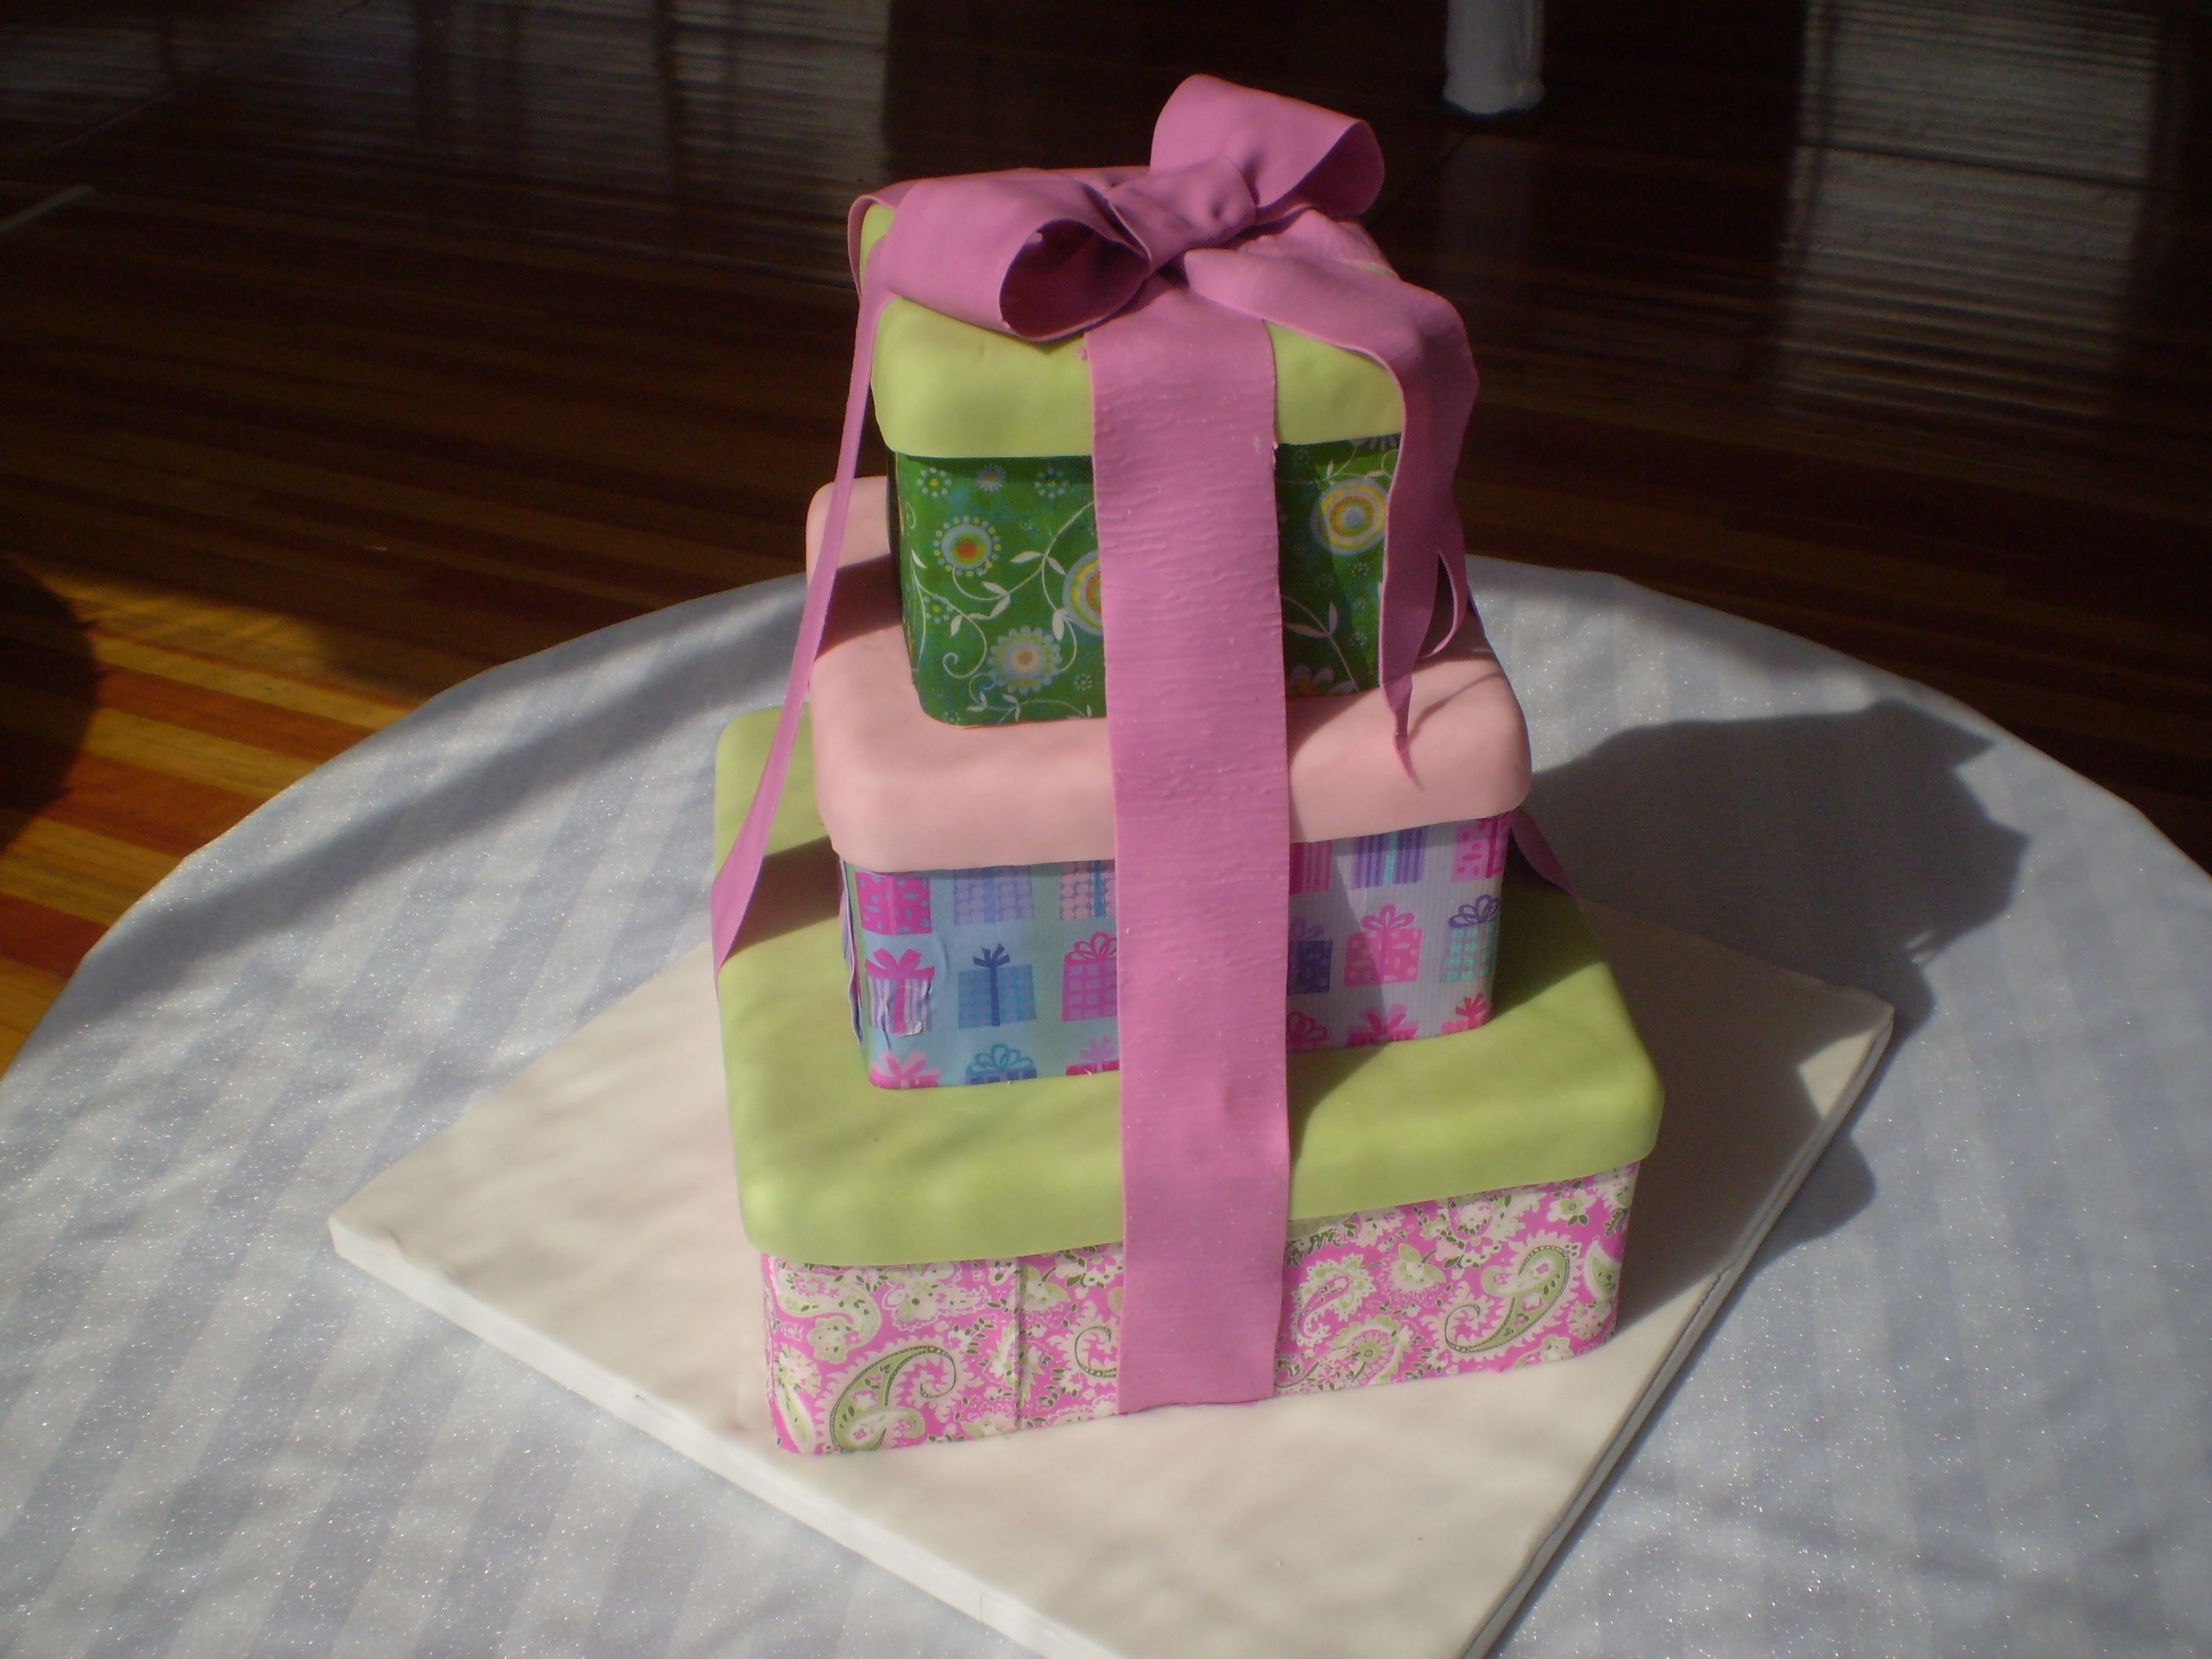 Cake Gift Wrapped Gift wrapping